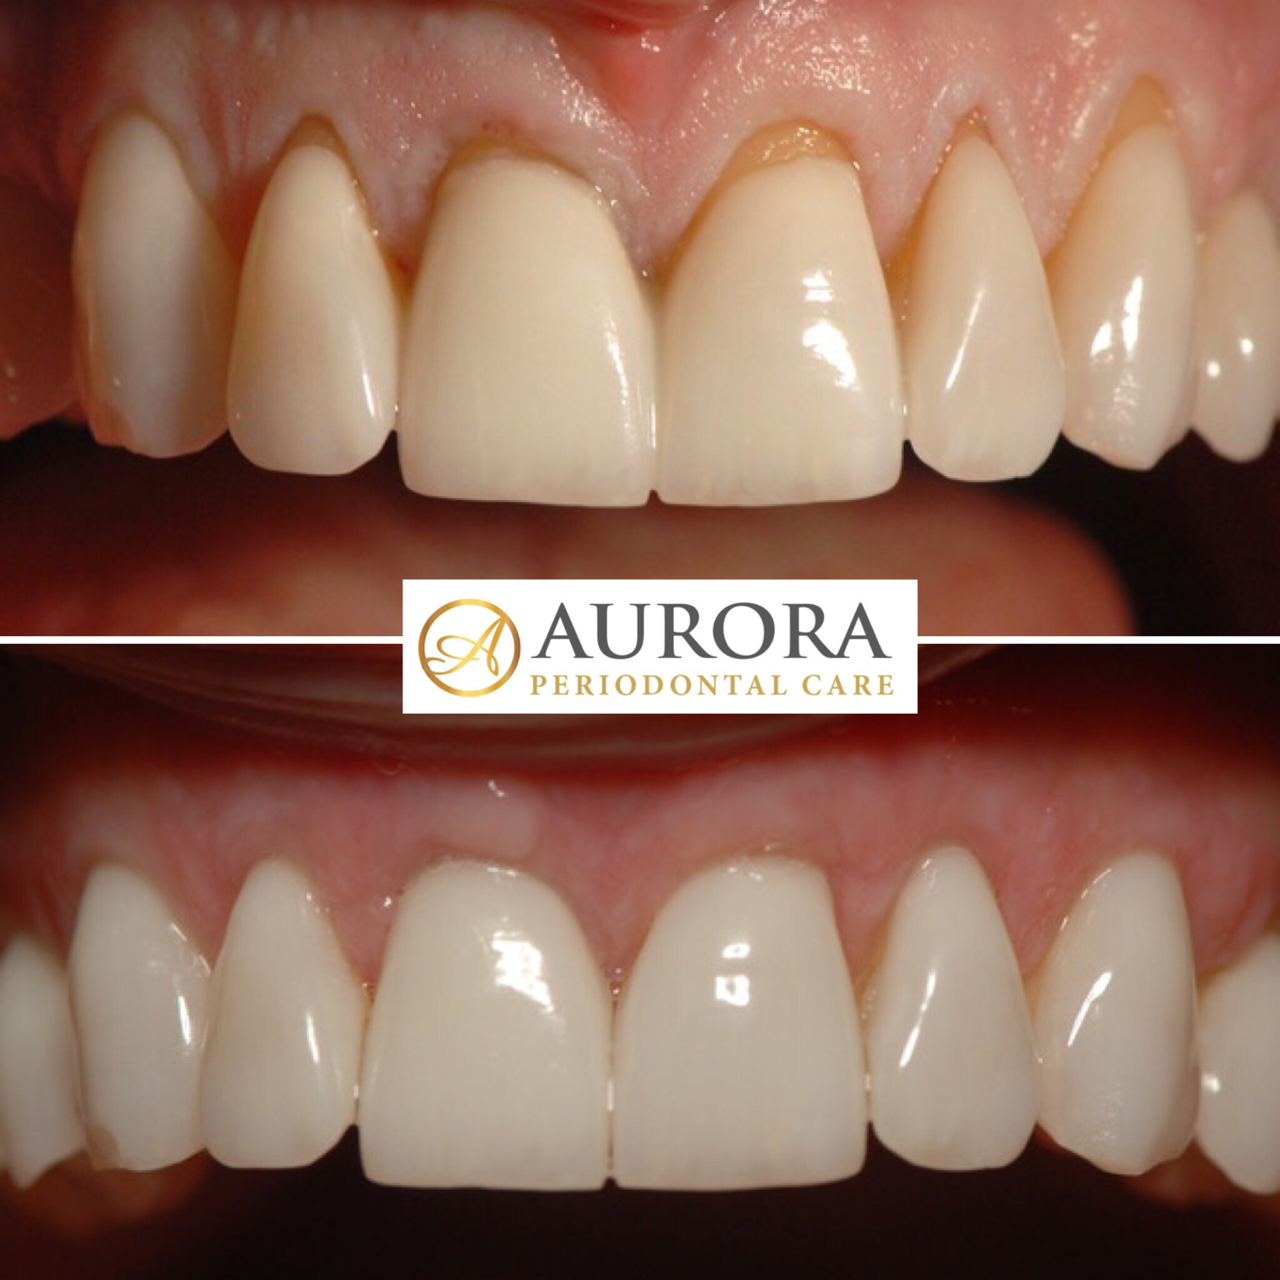 Dr. Sharona Talks About Using AlloDerm To Treat Gum Recession